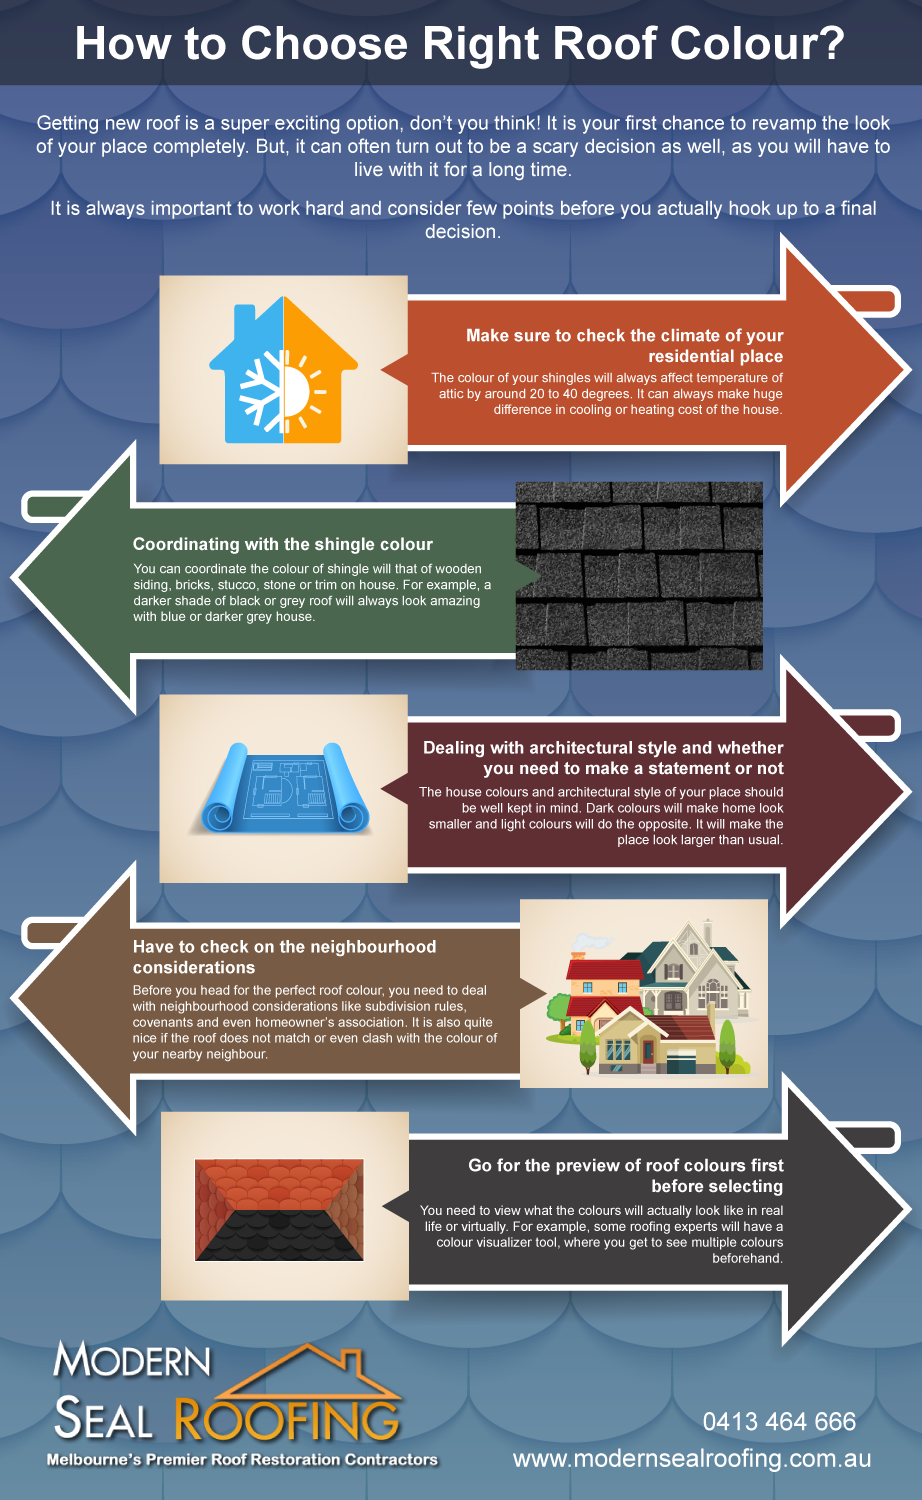 Getting New Roof Is A Super Exciting Option Don T You Think It Is Your First Chance To Revamp The Look Of Your Place Roof Restoration Roof Colors Roof Repair